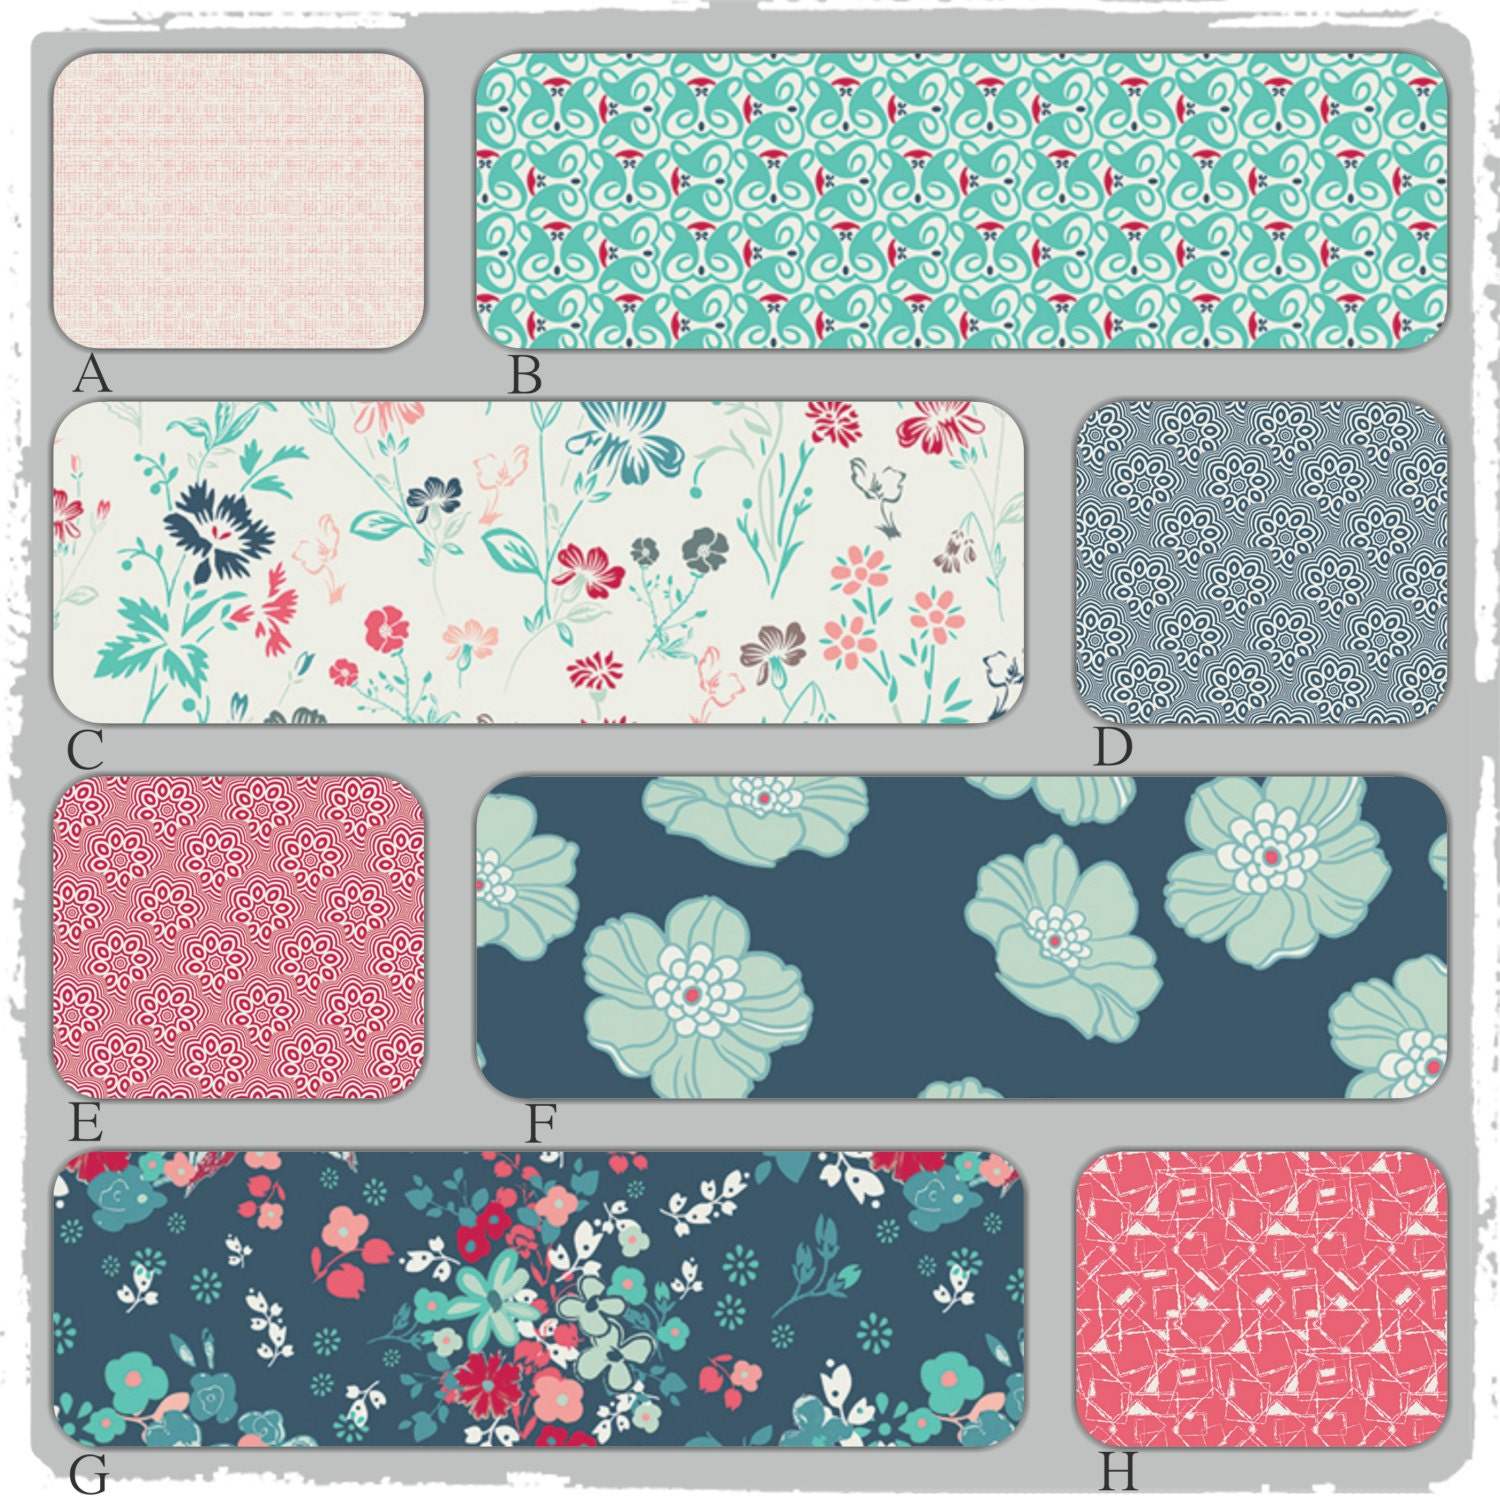 Peach And Aqua Bedroom: Custom Baby Bedding In Teal Turquoise Peach And Coral